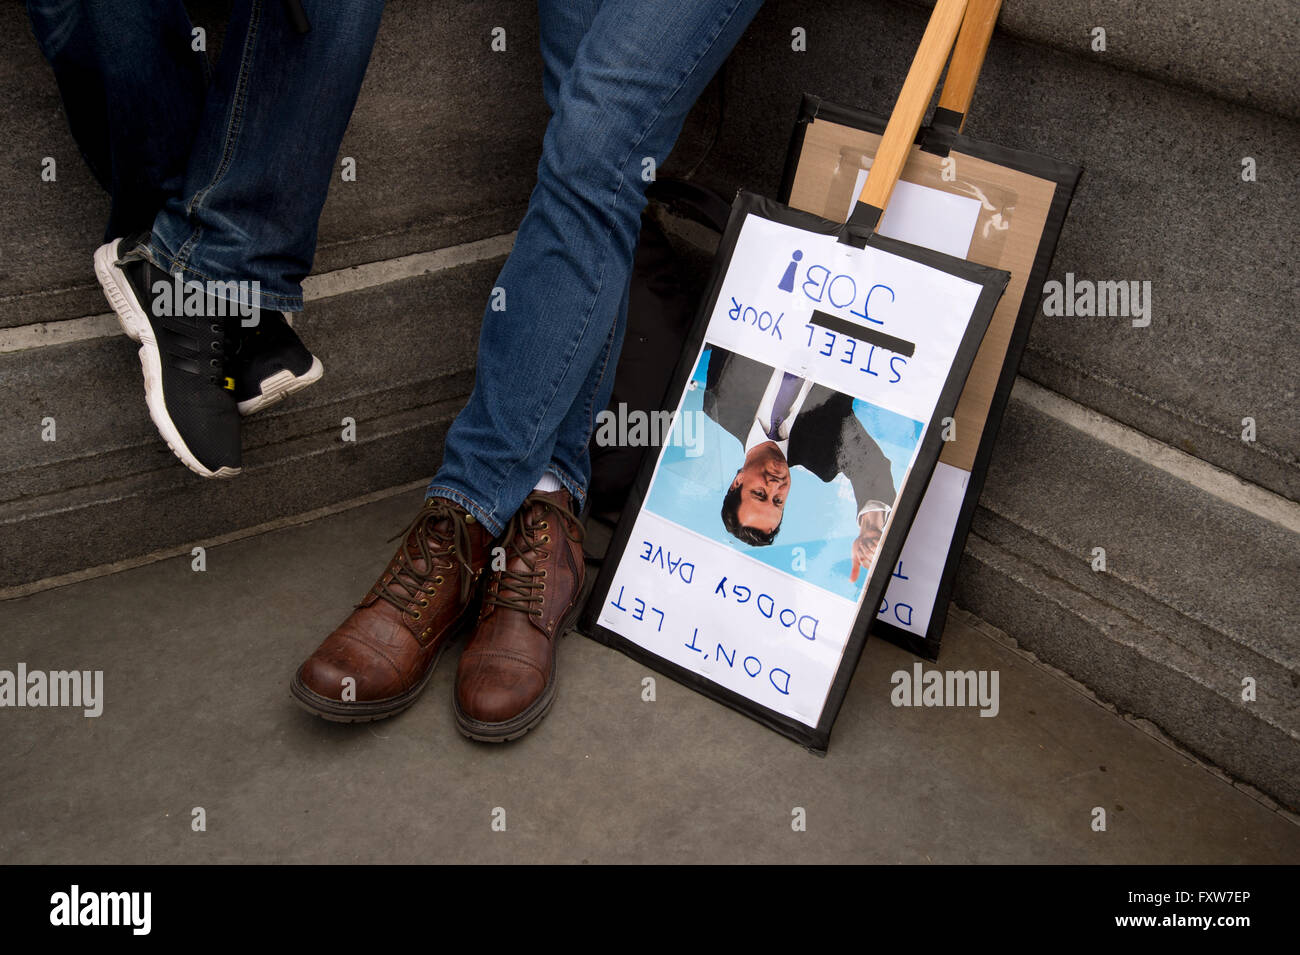 March organized by the People's Assembly, demonstrators protest  against austerity - Stock Image